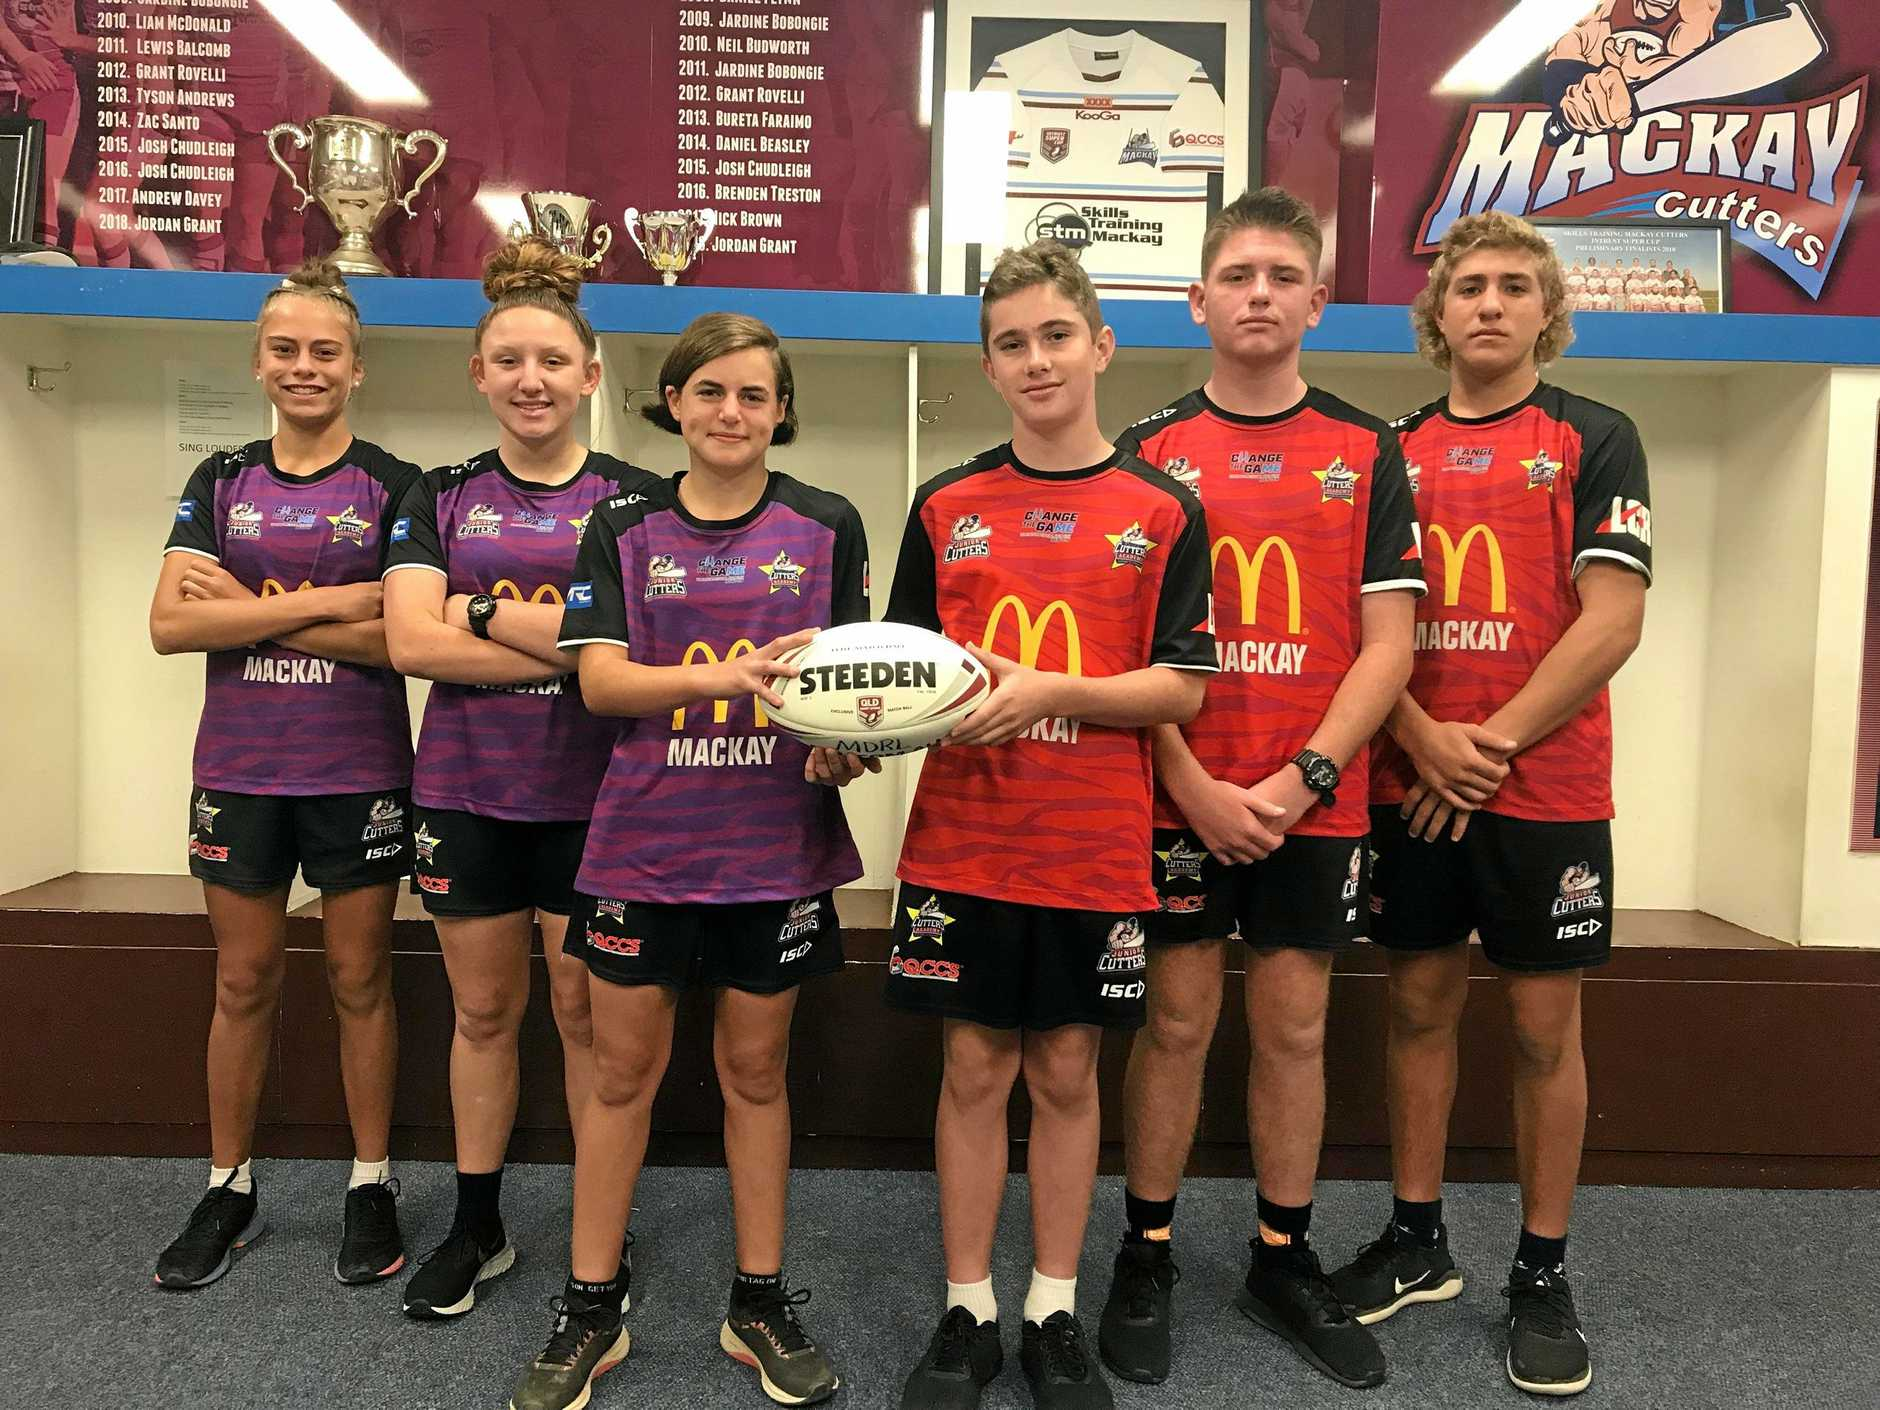 Mackay players selected in the junior Cutters team, Mersades Lawson, Ataliah Love, Abby Bowman, Bailey Caruana Levi Love and Tanner Quattromani.